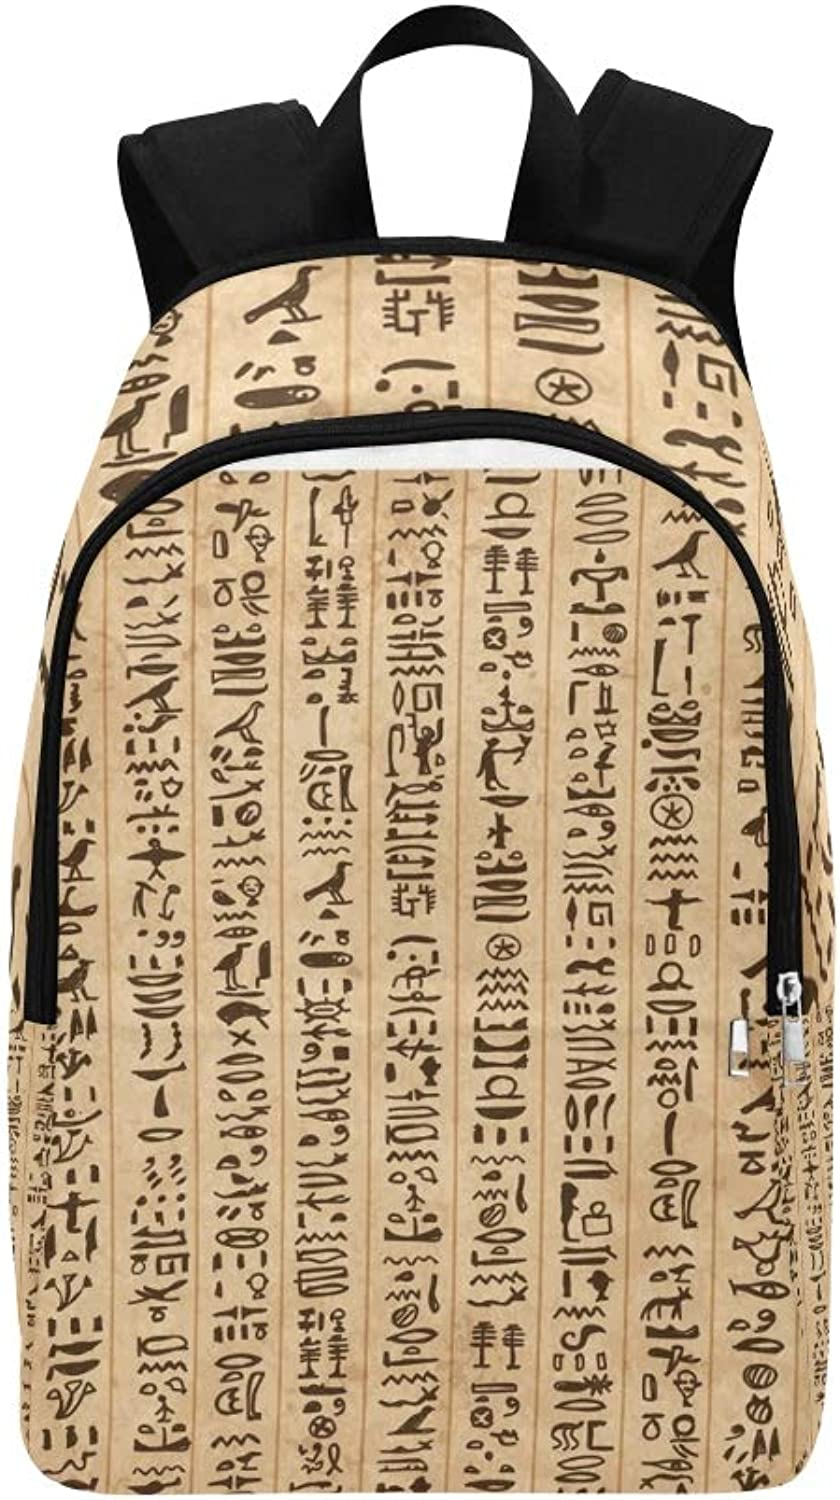 Egypt Hieroglyphs Grunge Your Casual Daypack Travel Bag College School Backpack for Mens and Women